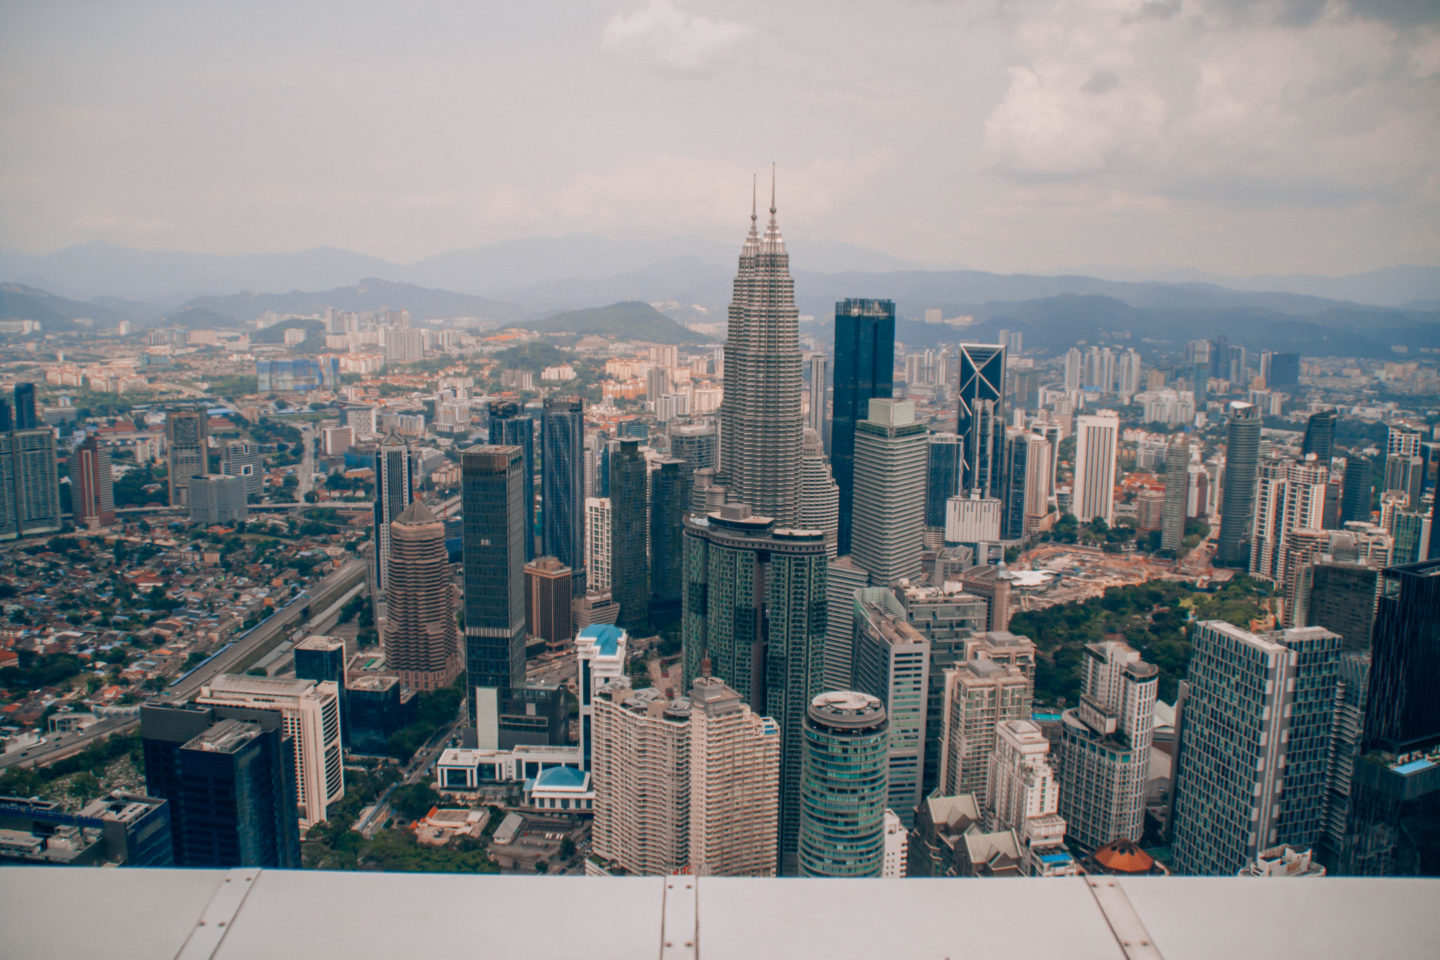 Skyline view on top of Menara tower in Kuala Lumpur